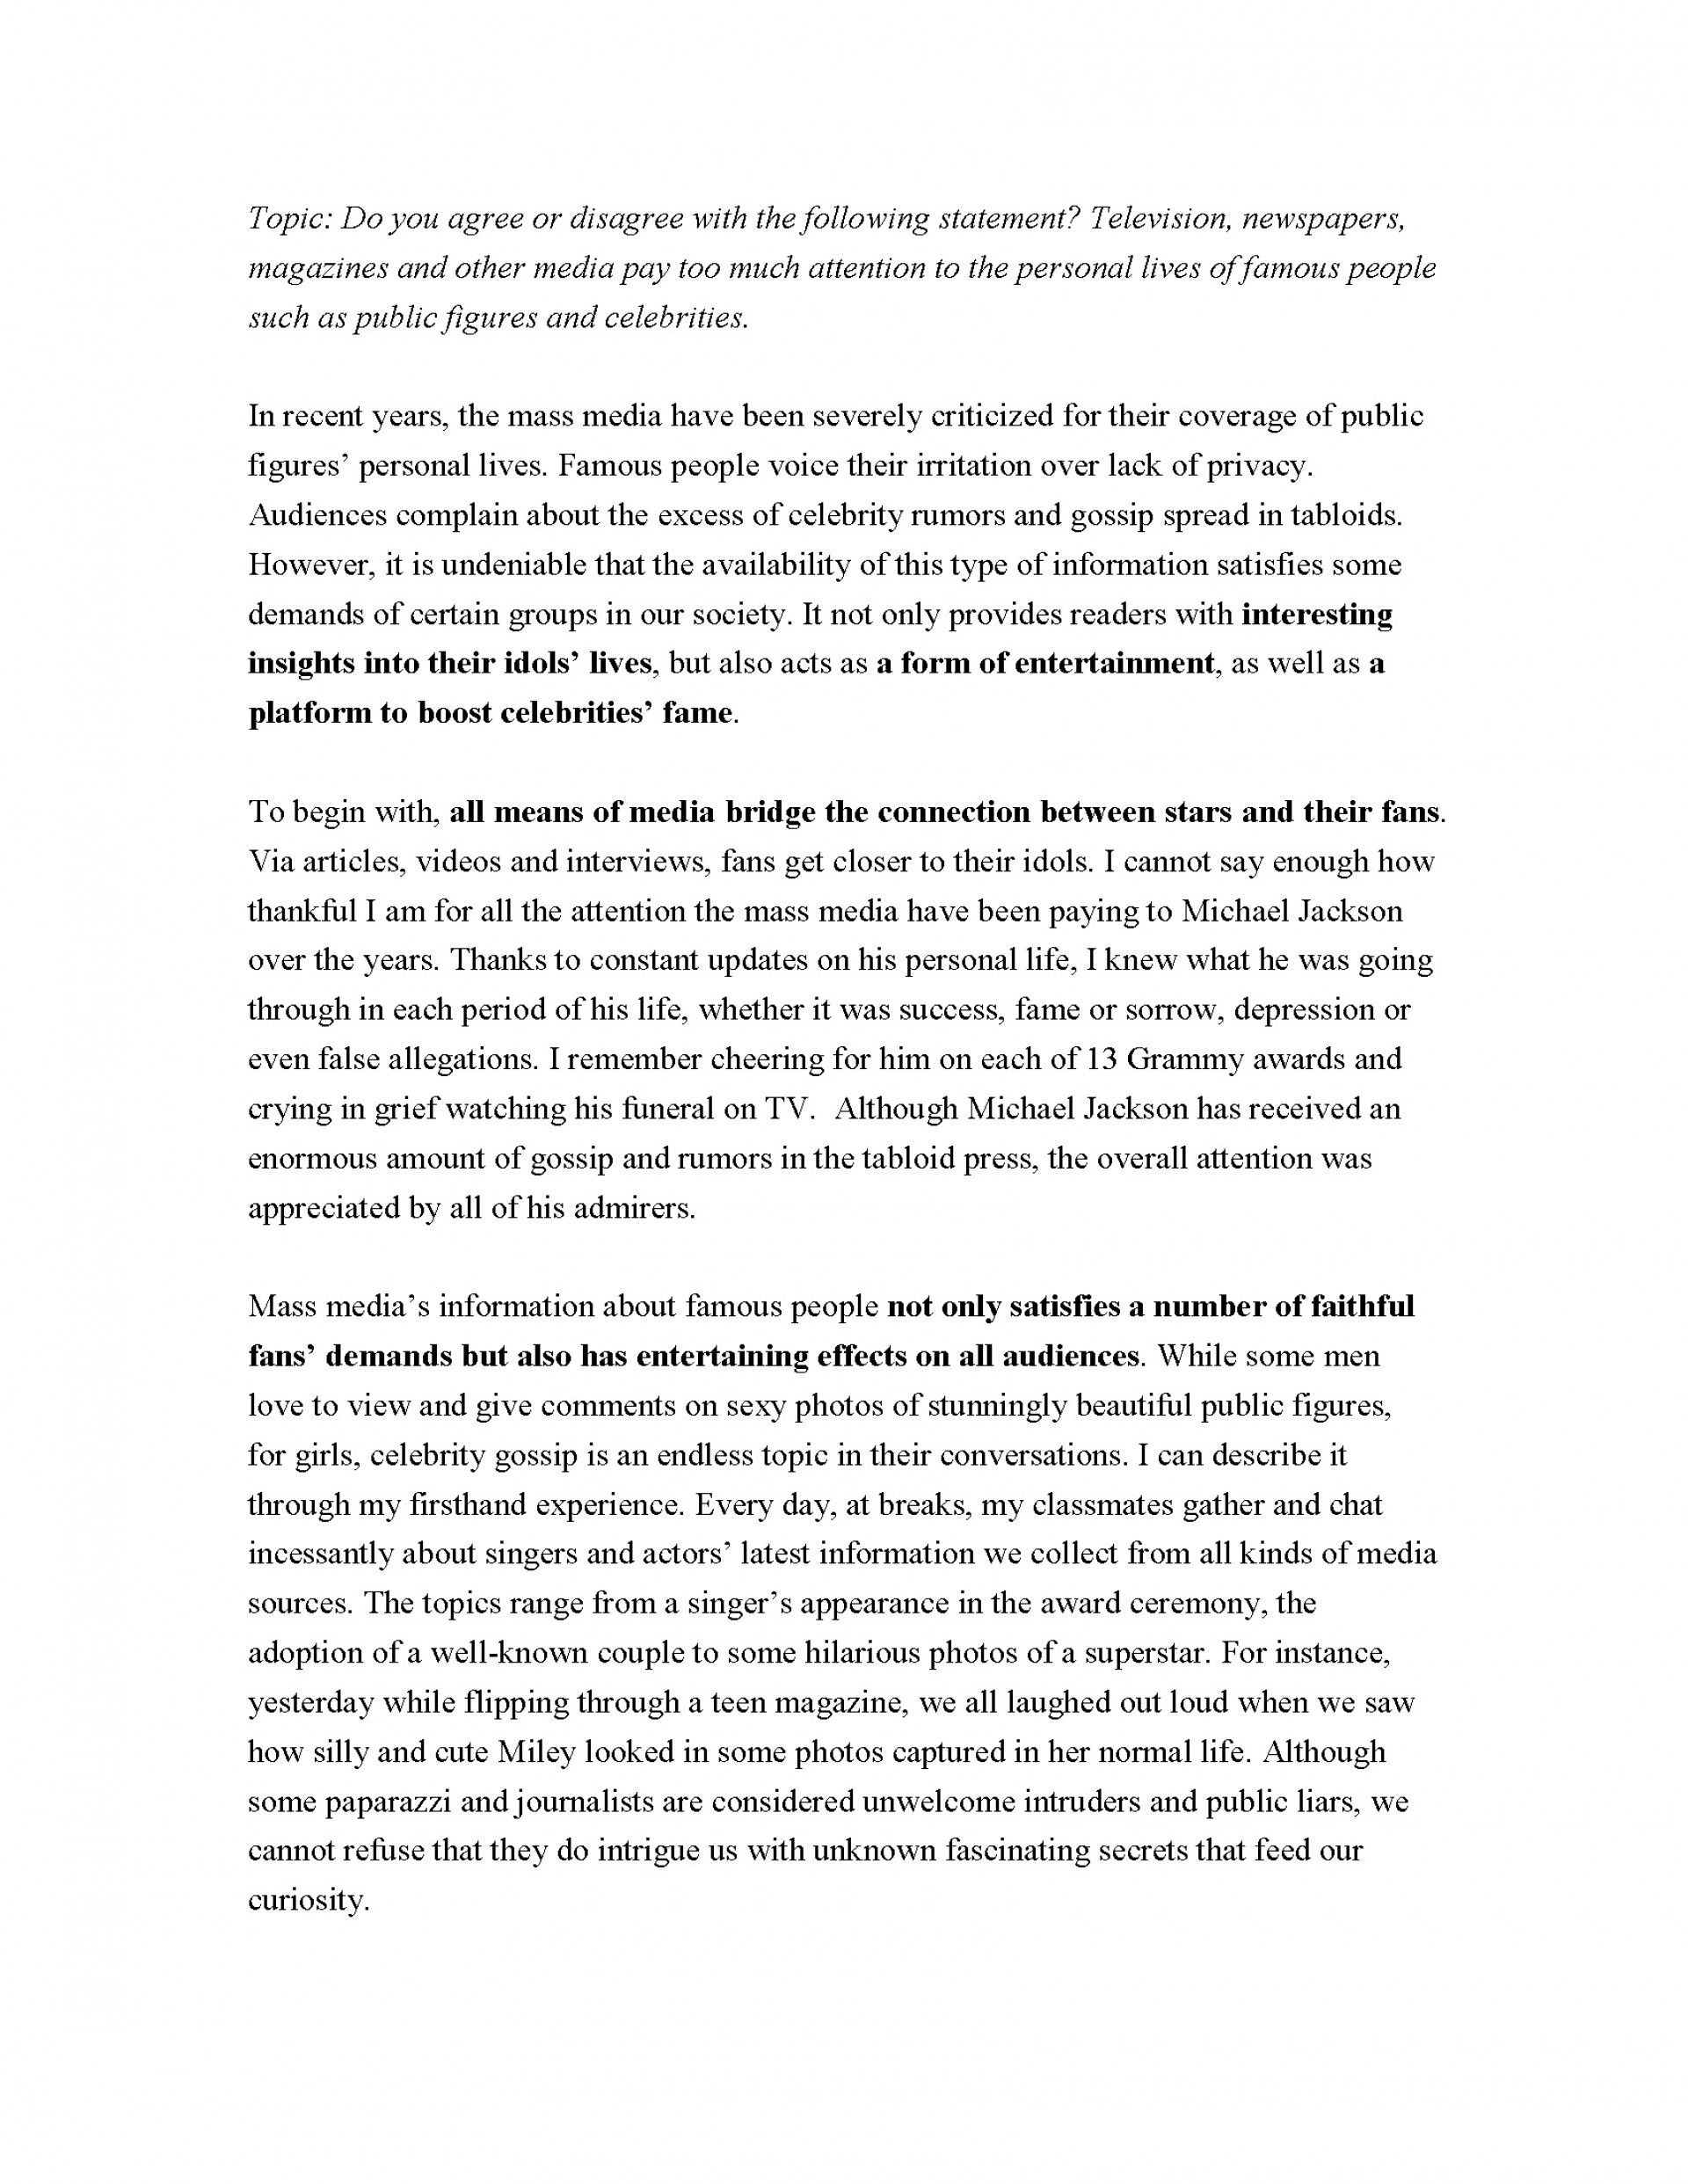 006 Essay Example Toefl Topics Essays On Privacy Agree Disagree Writing Pdf The Mass Medias Attent Ibt With Answers Examples Dreaded 2017 185 Ets 1920